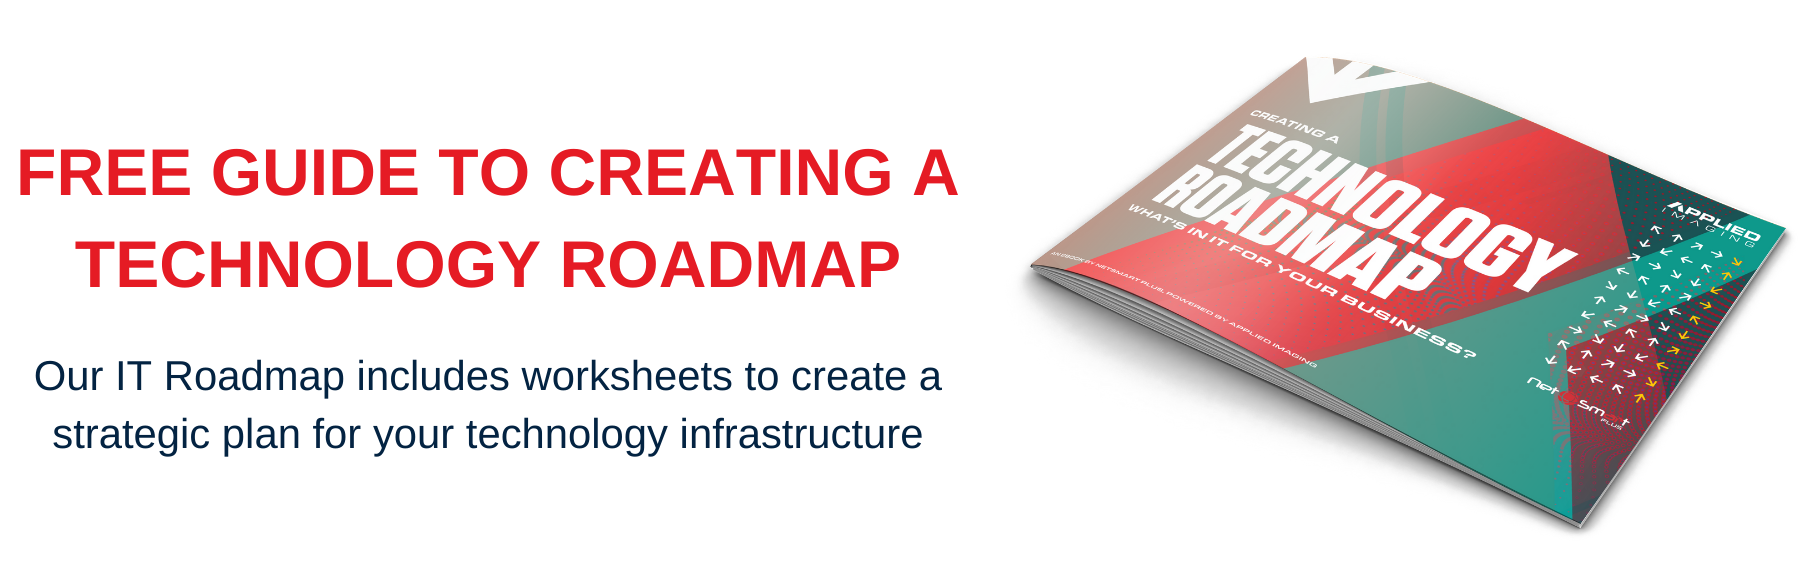 Technology Roadmap eBook Cover and Free Download Offer